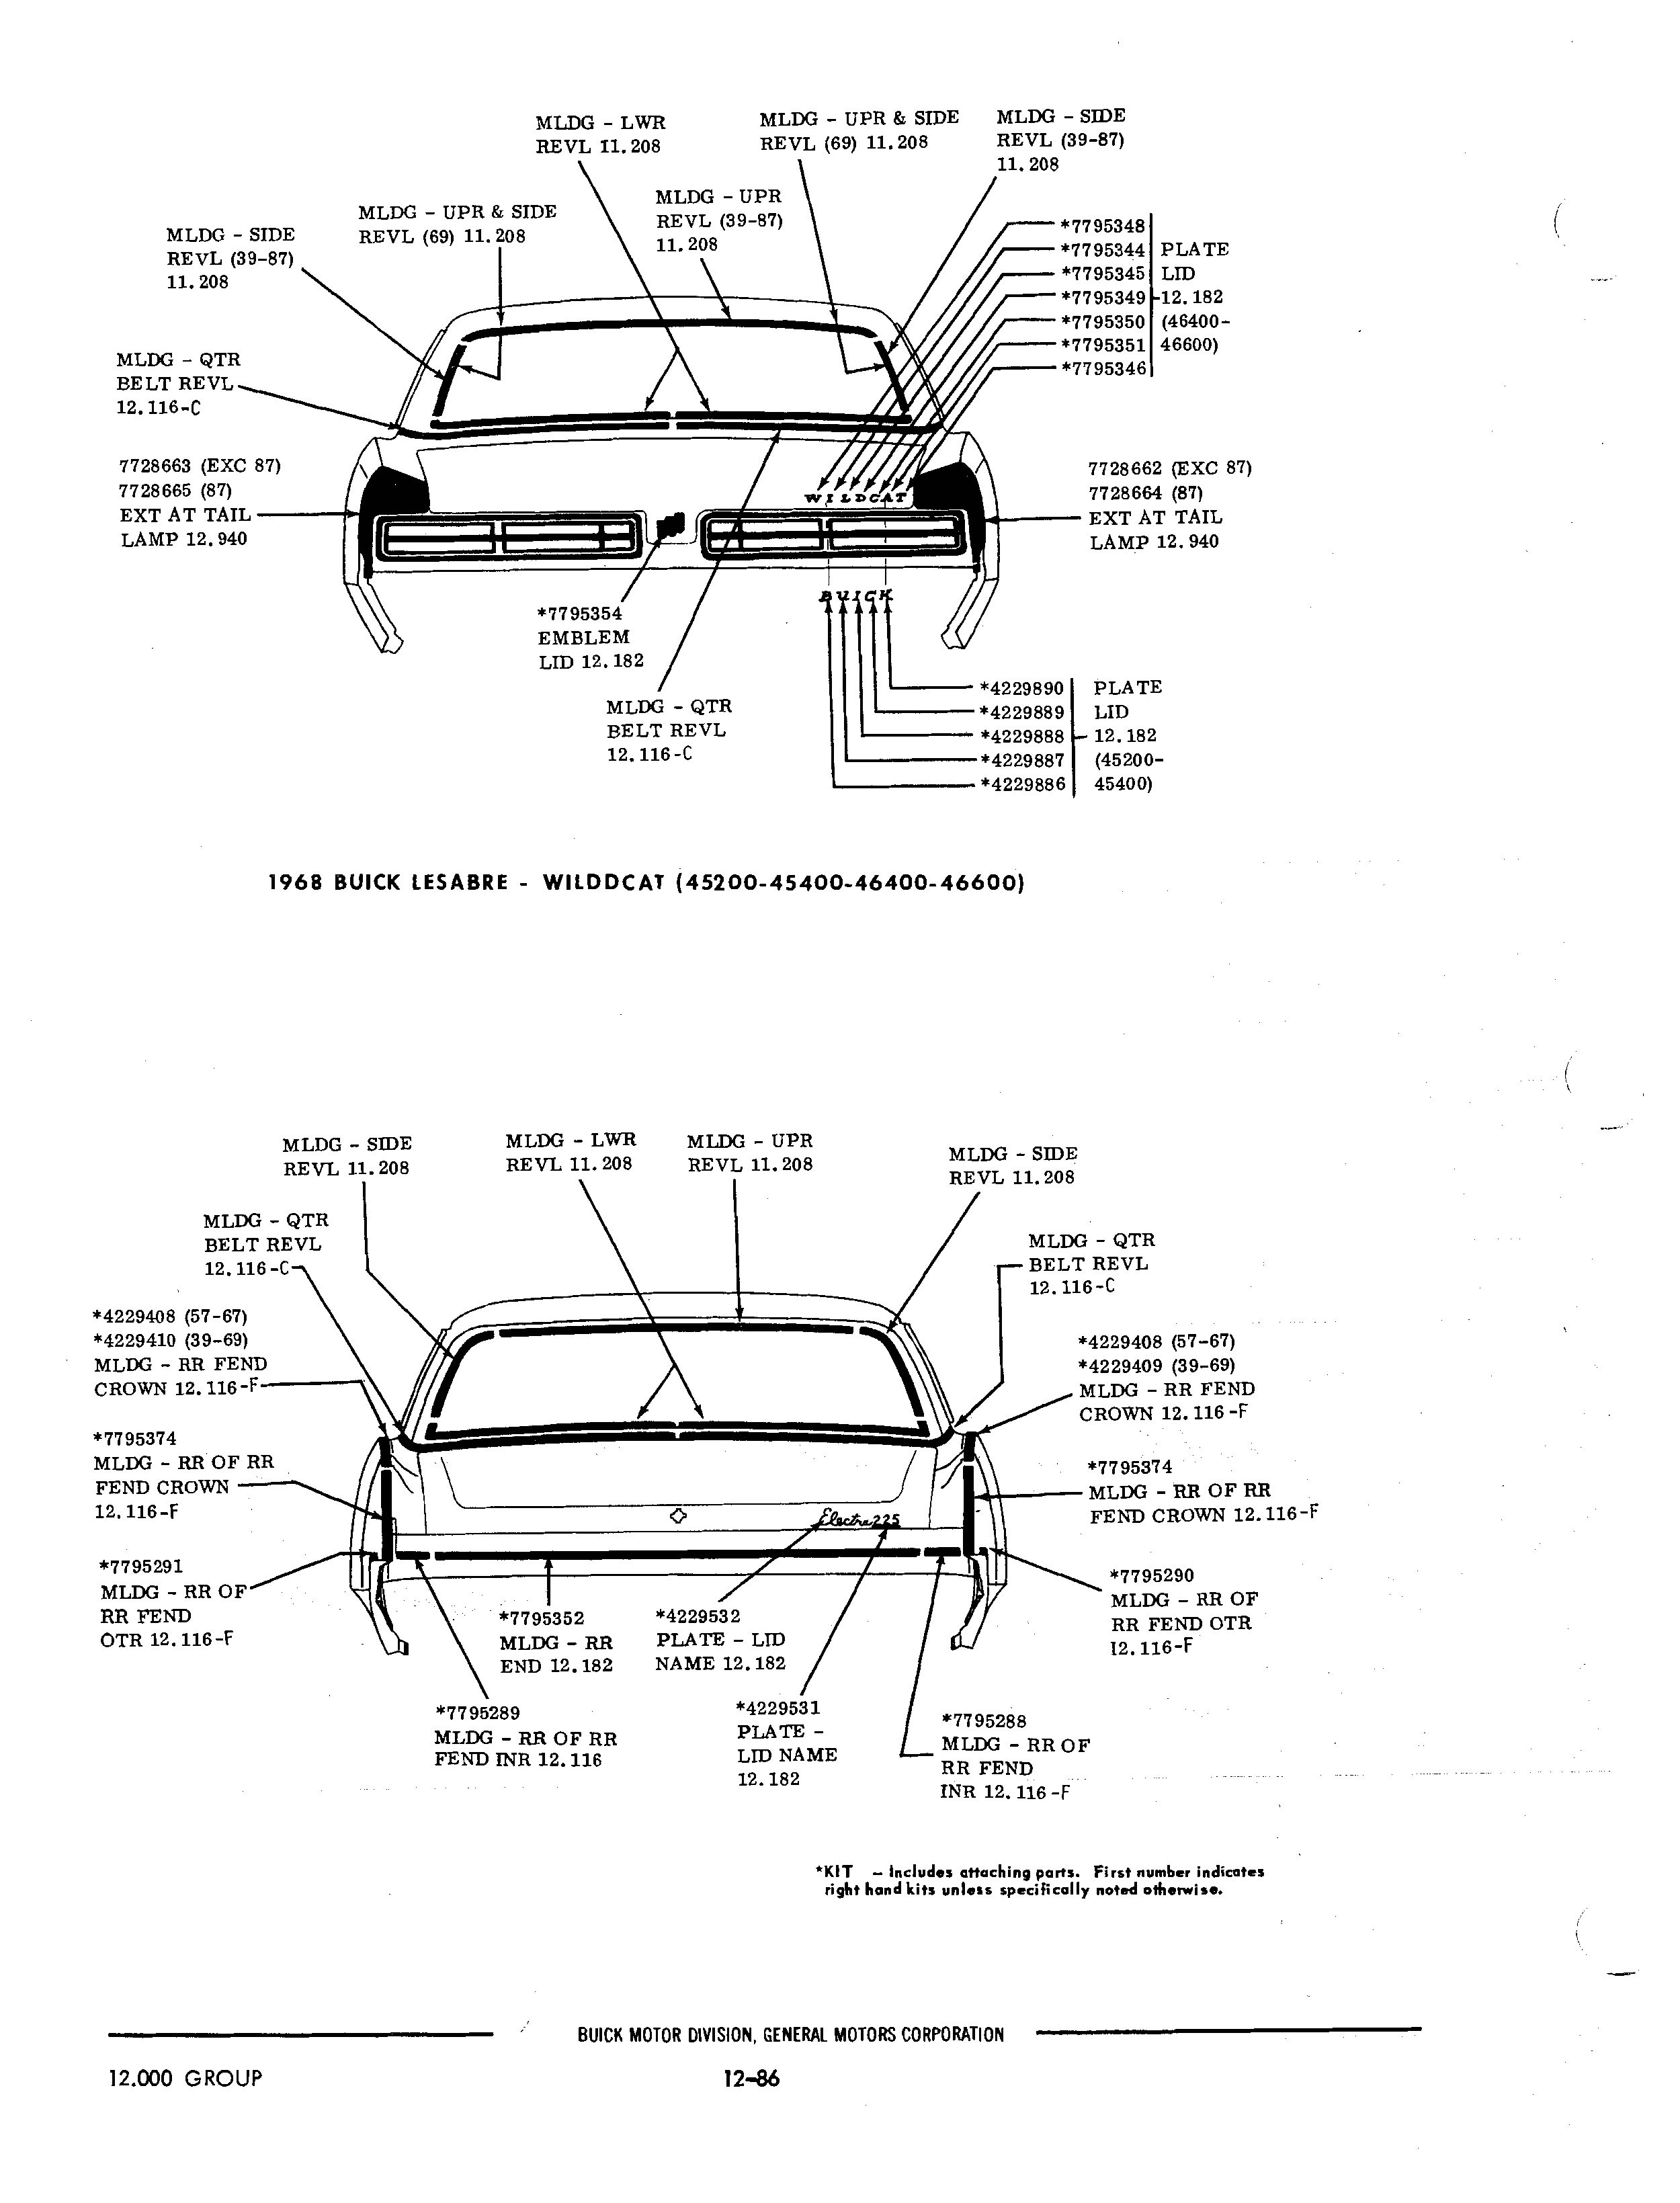 1972 mustang sheet metal diagram